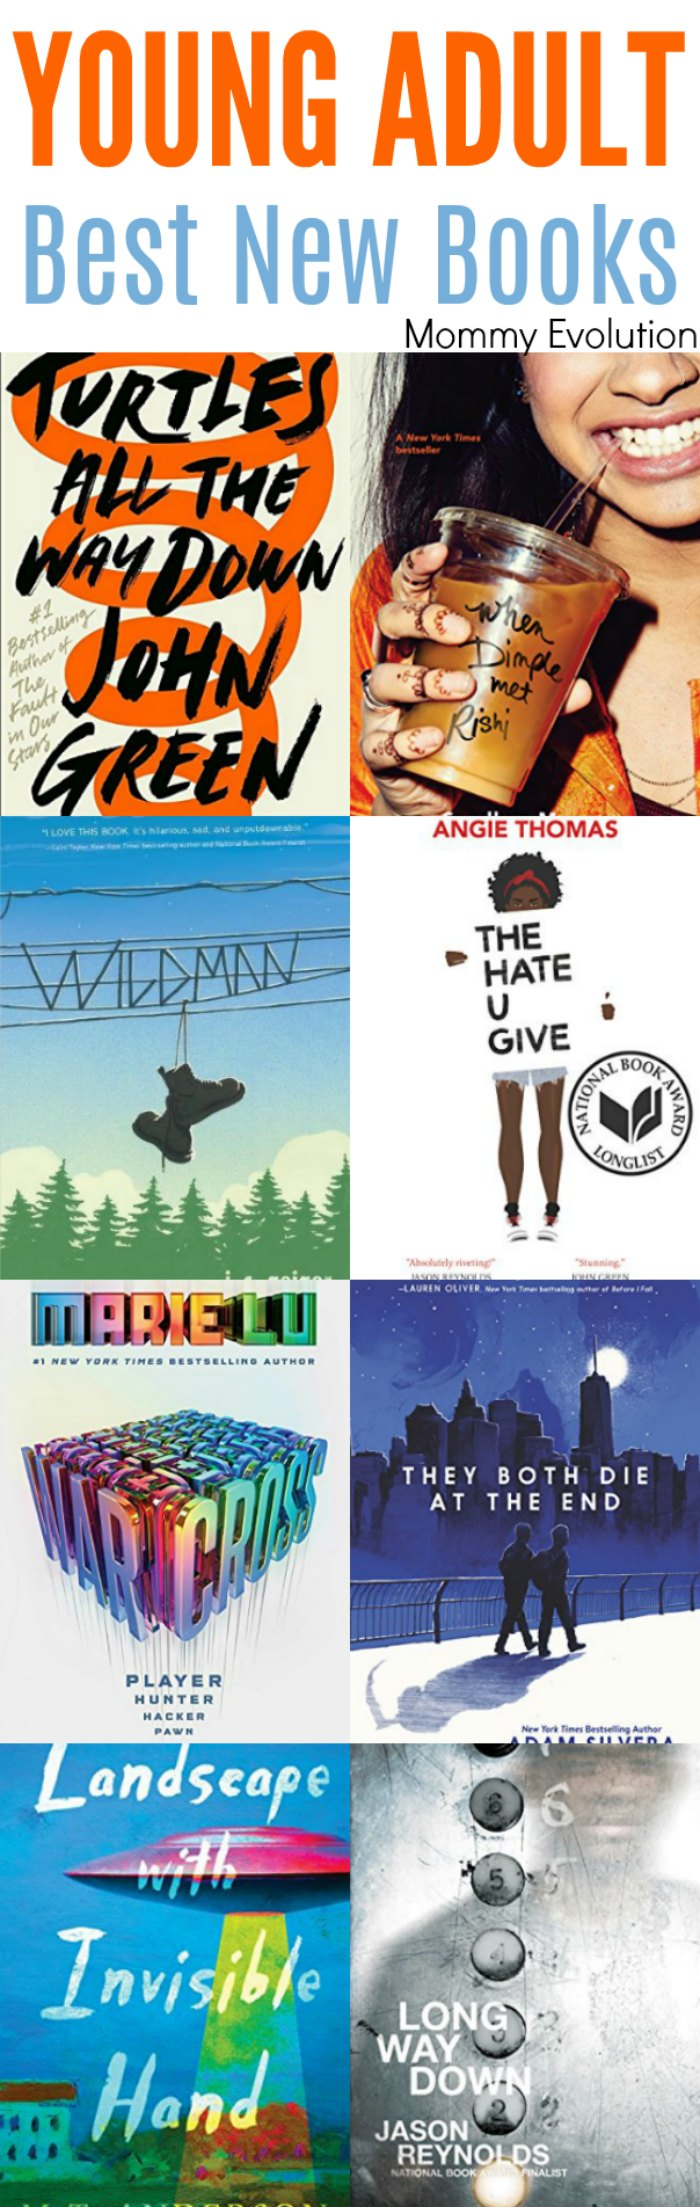 Best New Young Adult Books of the Year. Perfect for teens in high school | Mommy Evolution